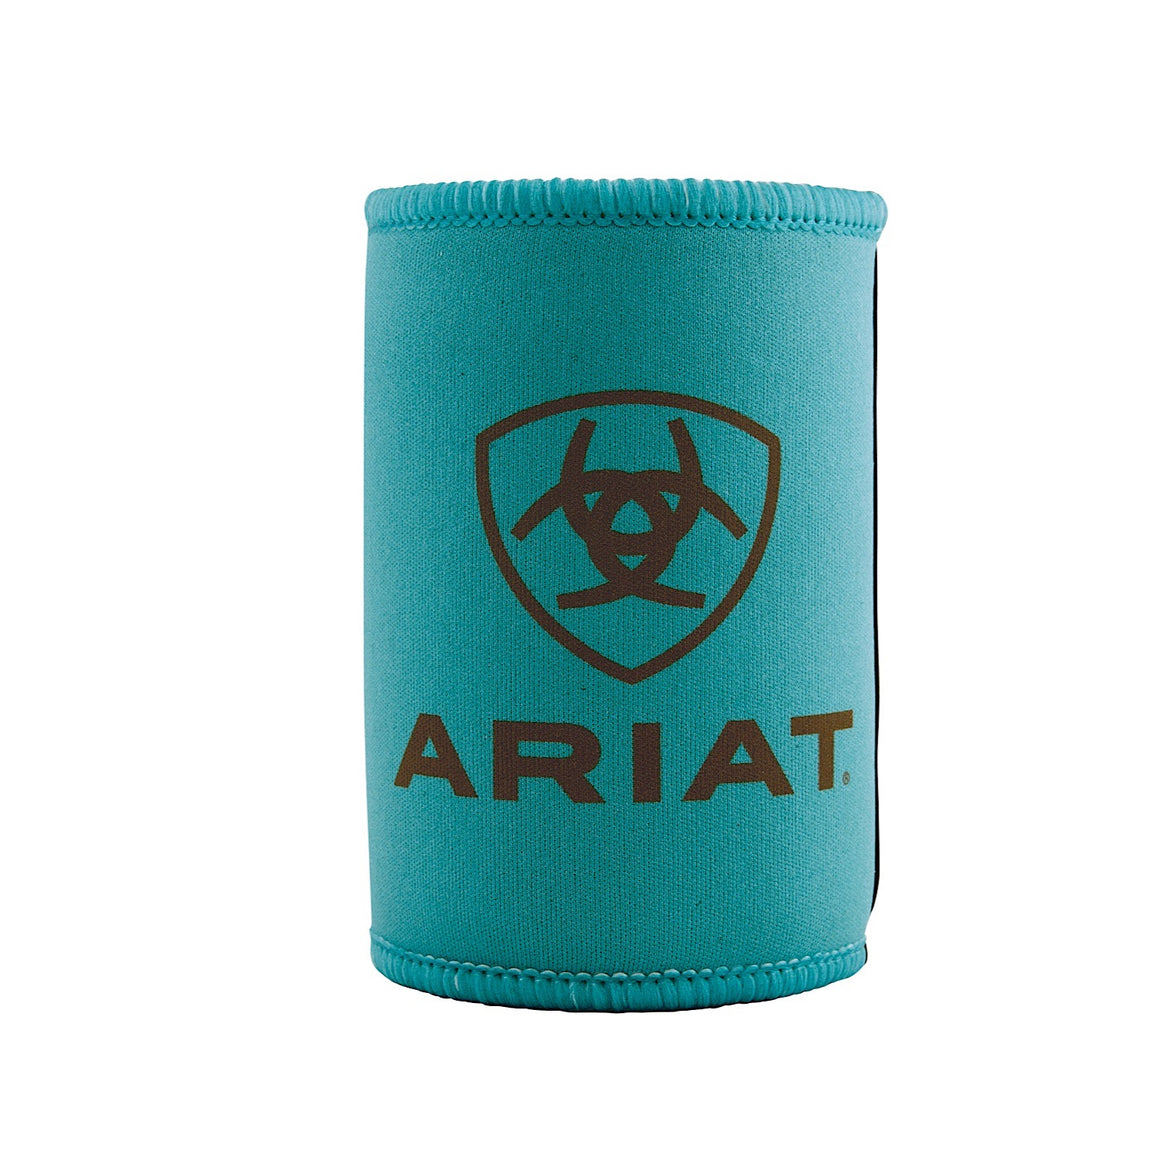 Ariat Stubby Cooler Turquoise/Brown